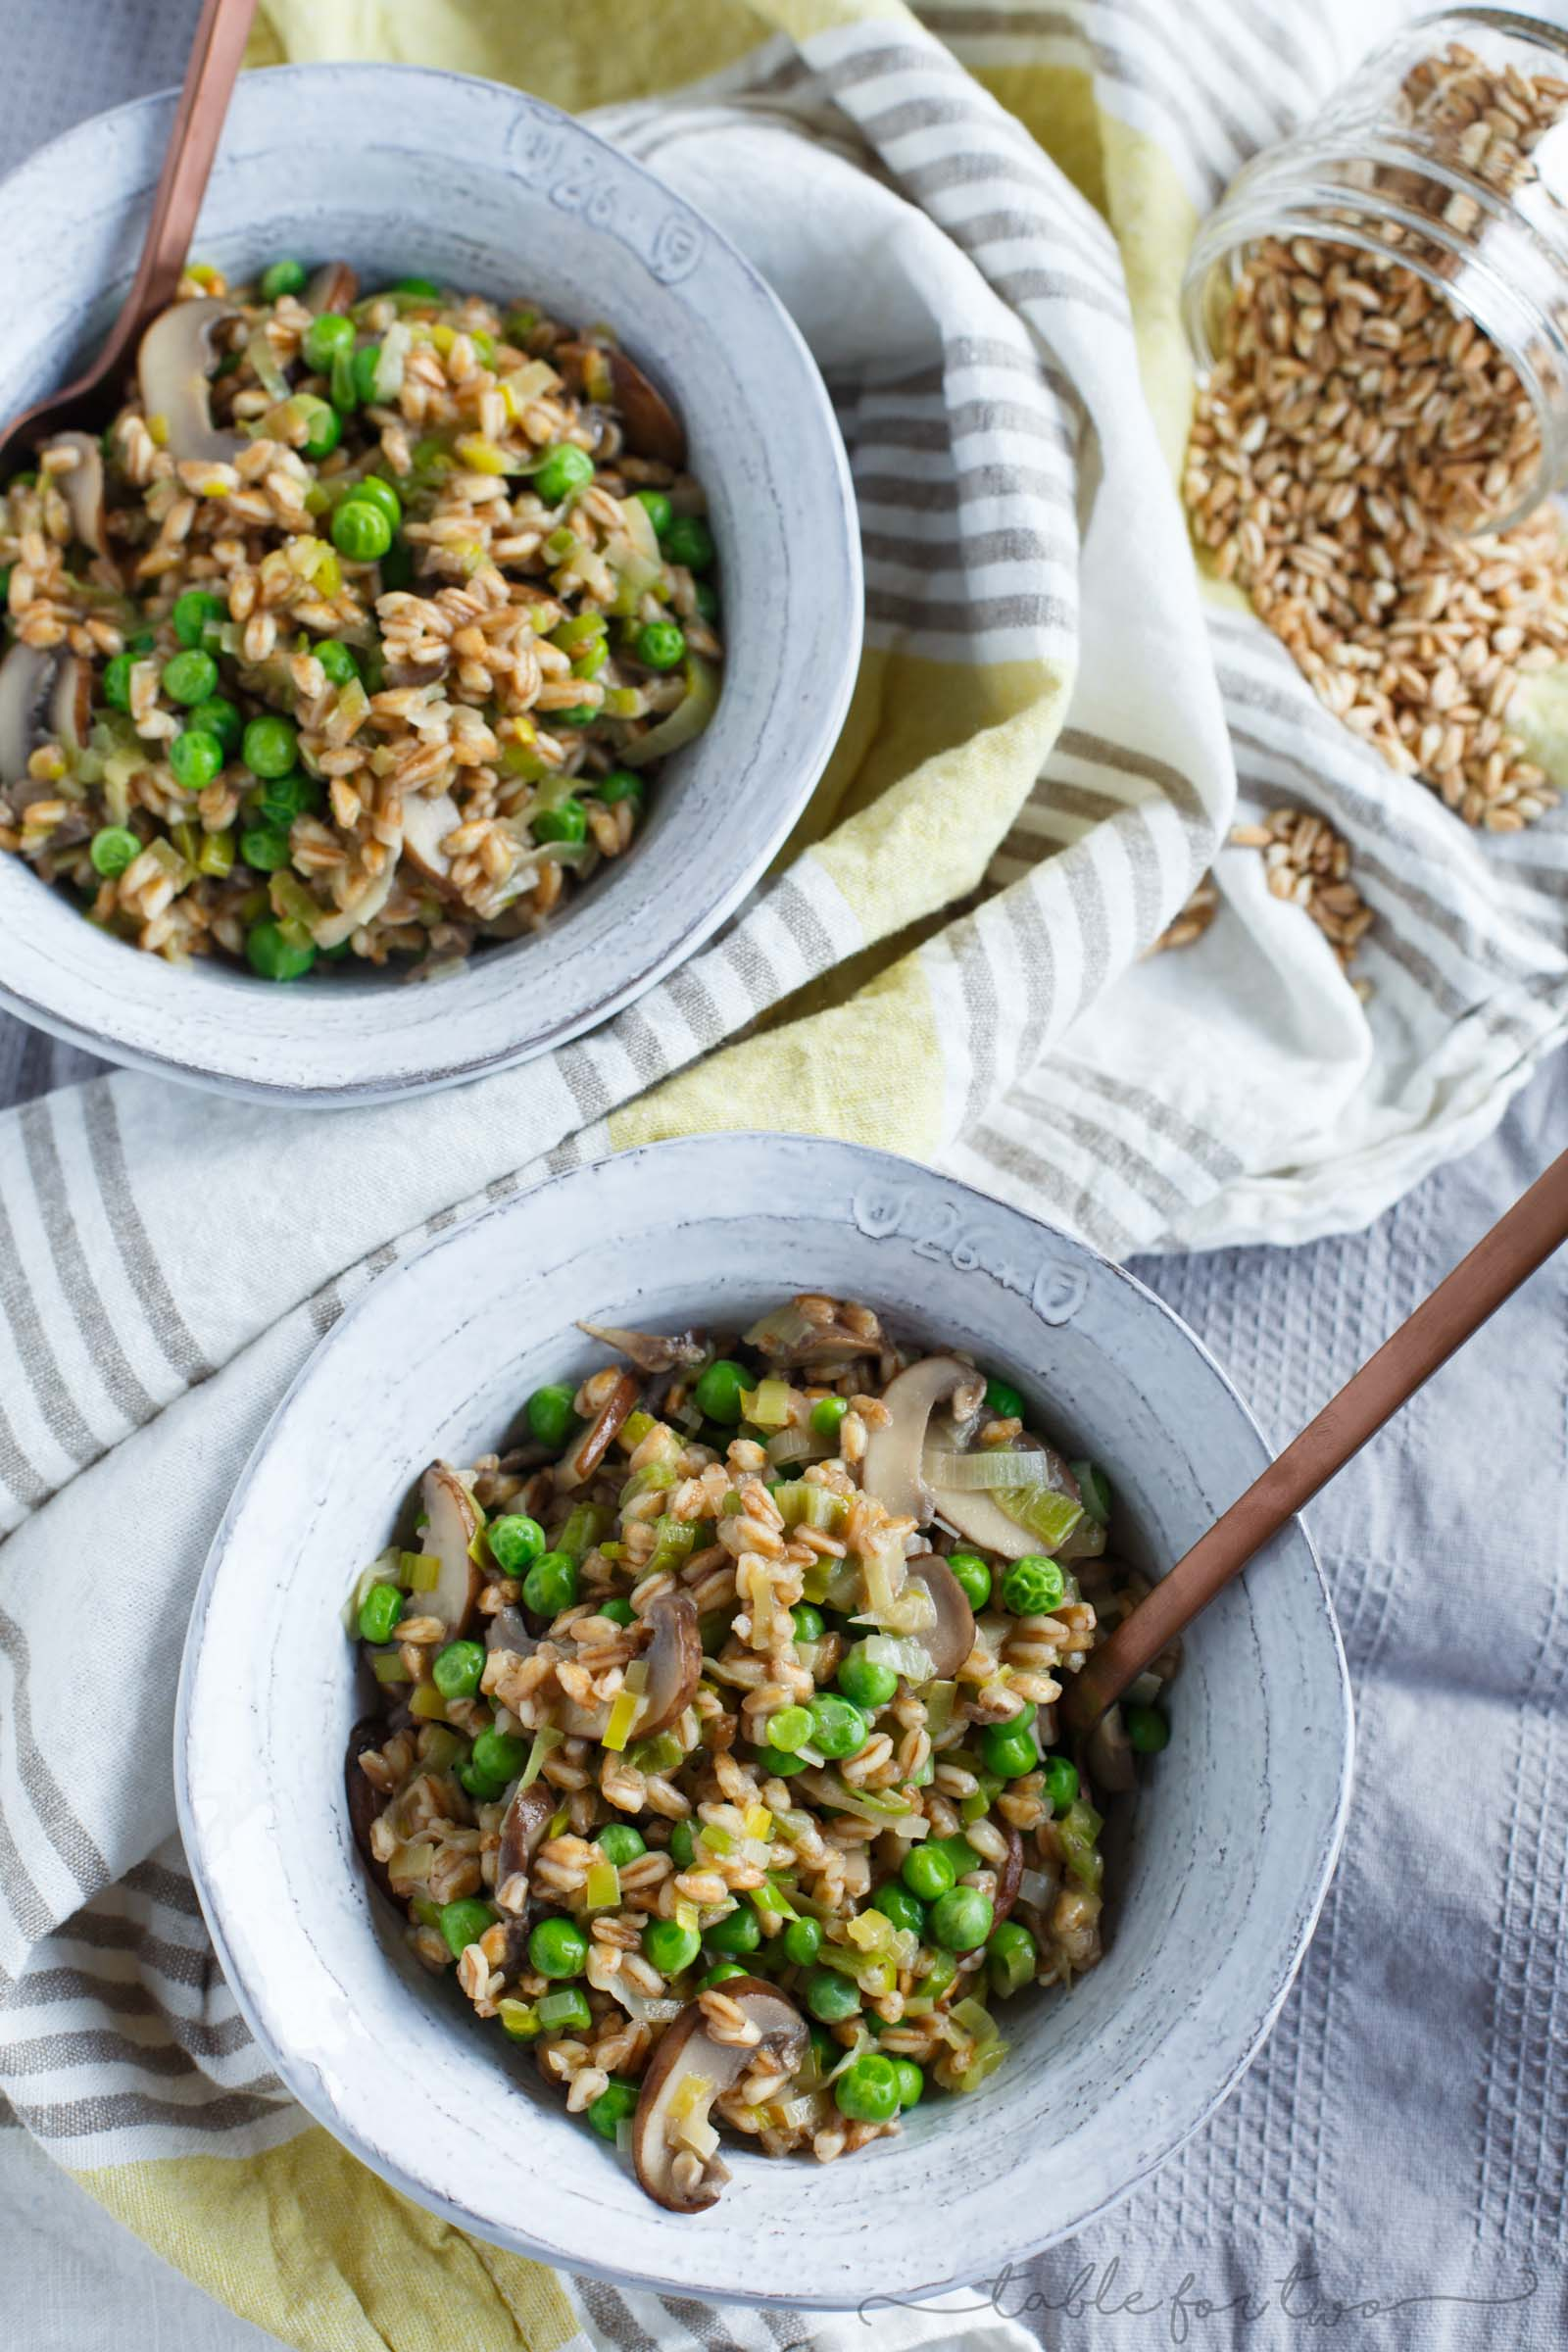 A great way to use farro in this flavorful dish! Filled with leeks, mushrooms, peas, and lots of parmesan cheese; this cozy farro dish is a quick one to whip up anytime of the week!